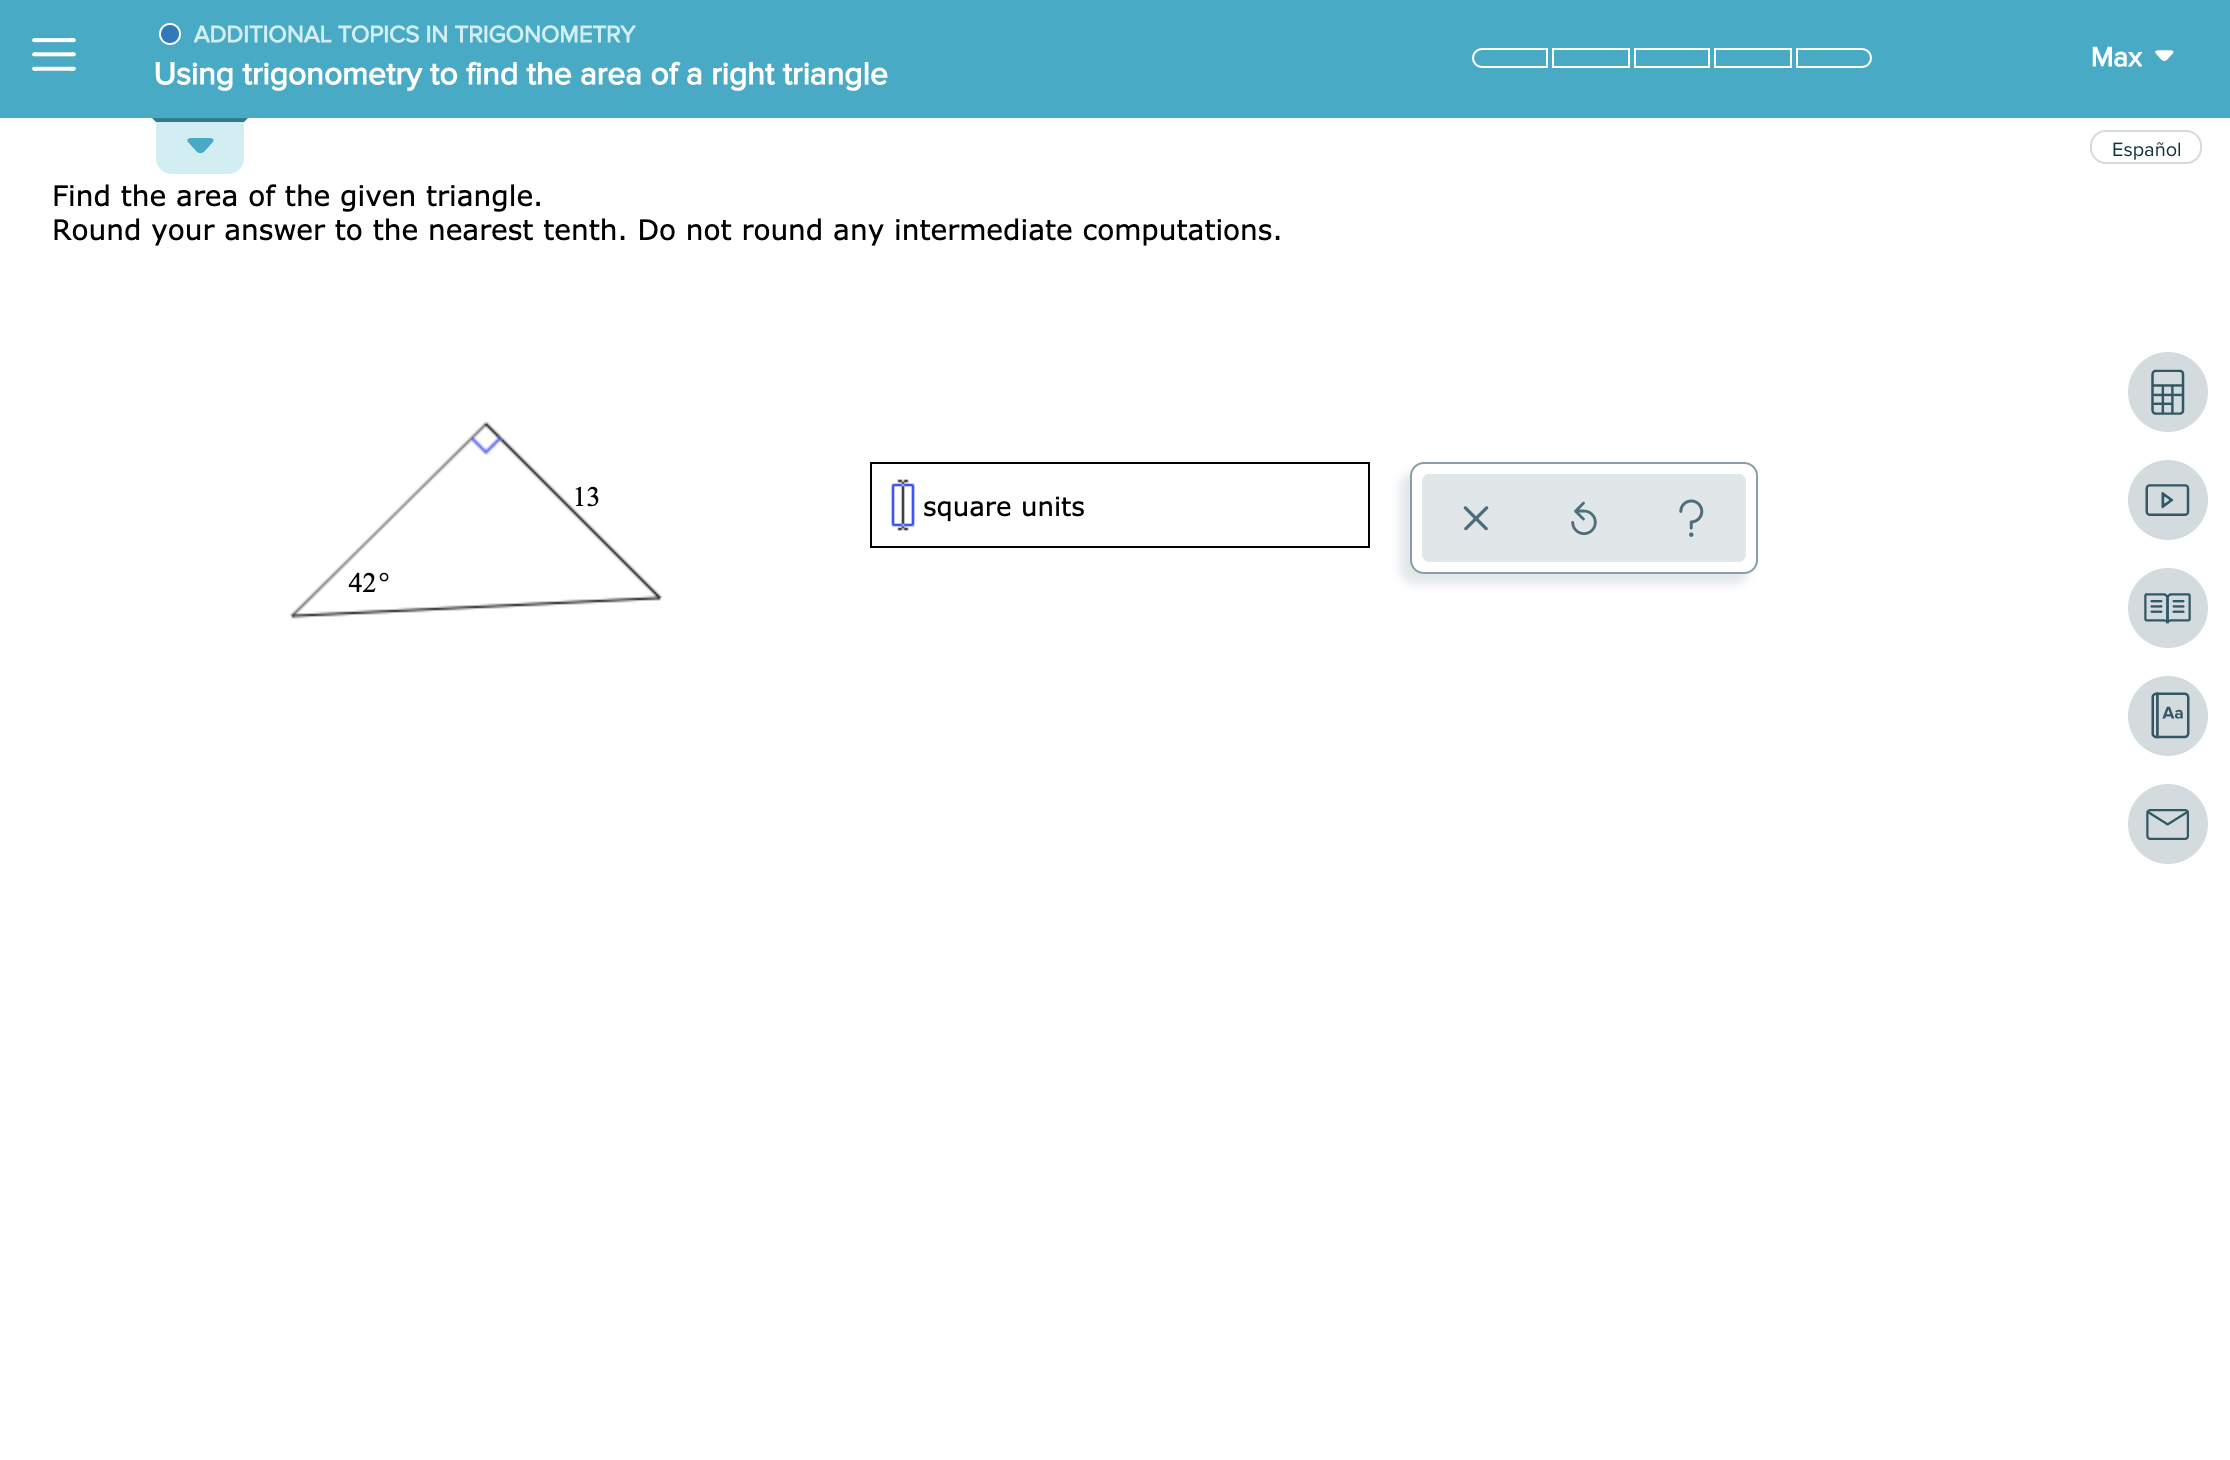 ADDITIONAL TOPICS IN TRIGONOMETRY Max Using trigonometry to find the area of a right triangle Español Find the area of the given triangle. Round your answer to the nearest tenth. Do not round any intermediate computations. 13 ? square units 42° Aa